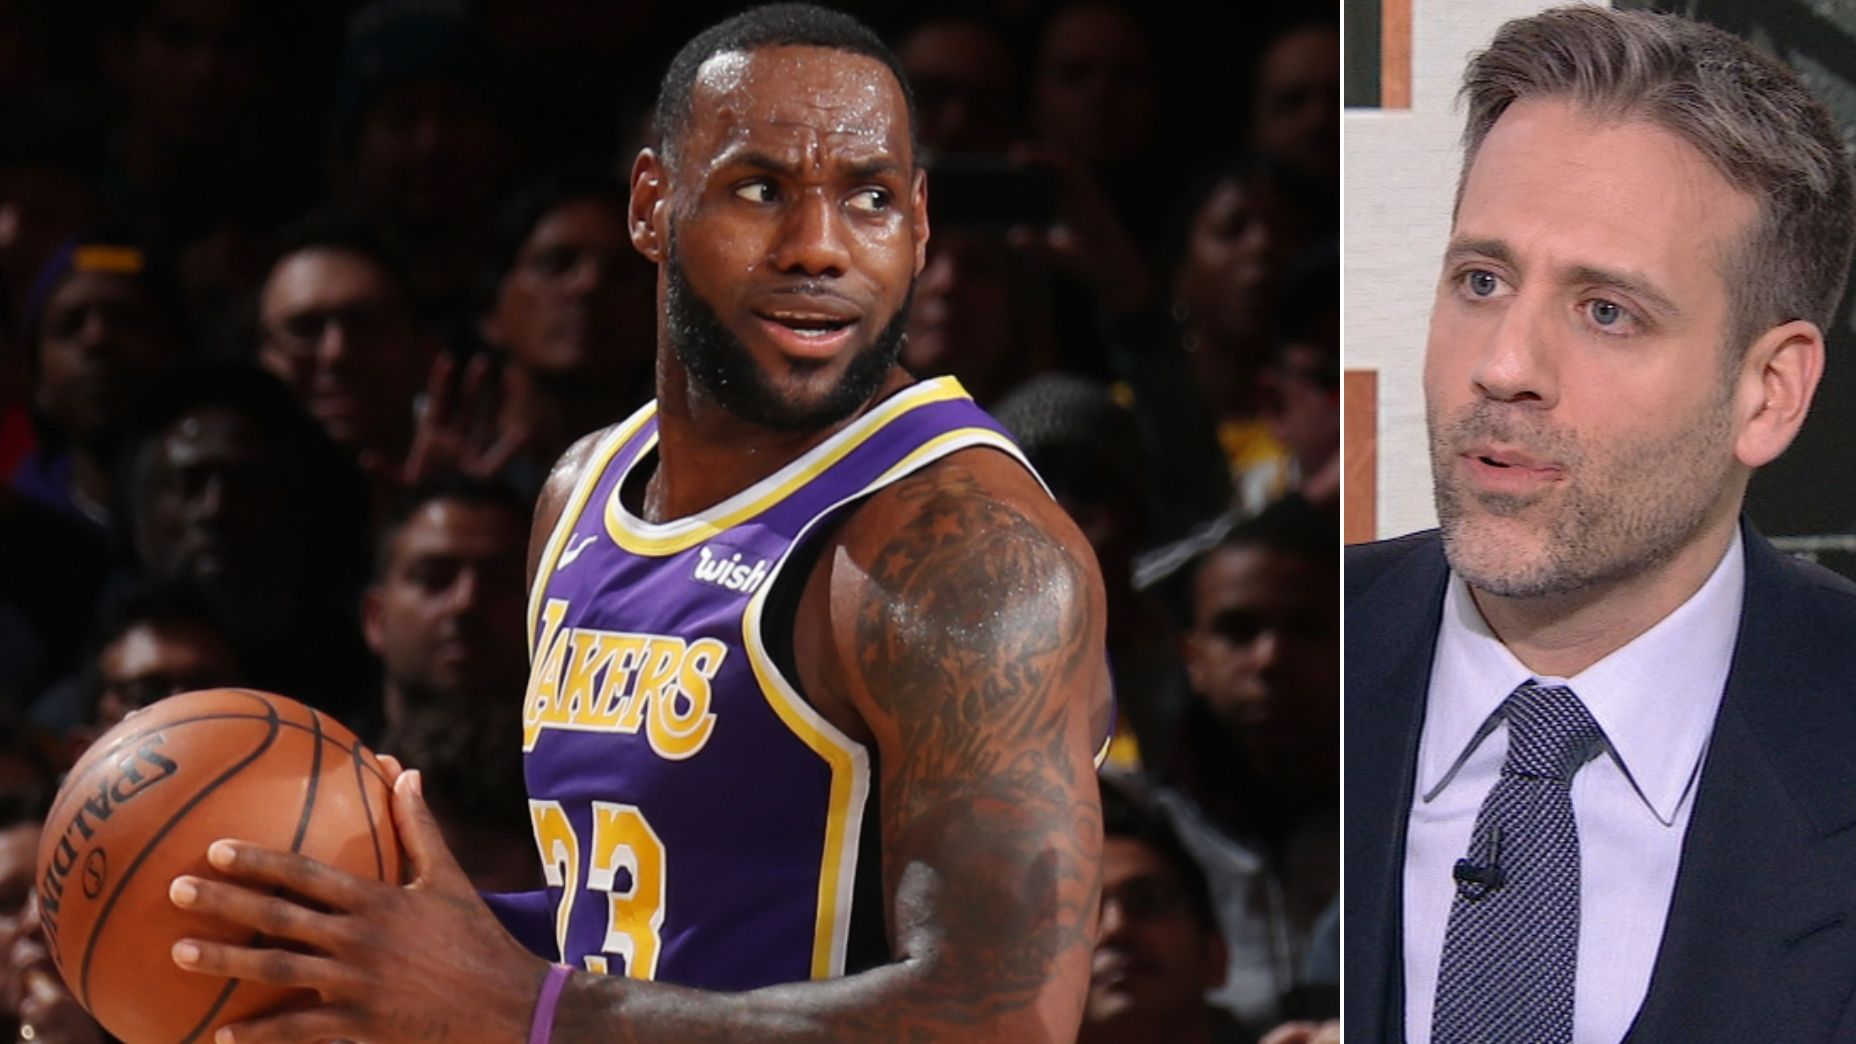 Kellerman: Frazier can say what he feels about LeBron